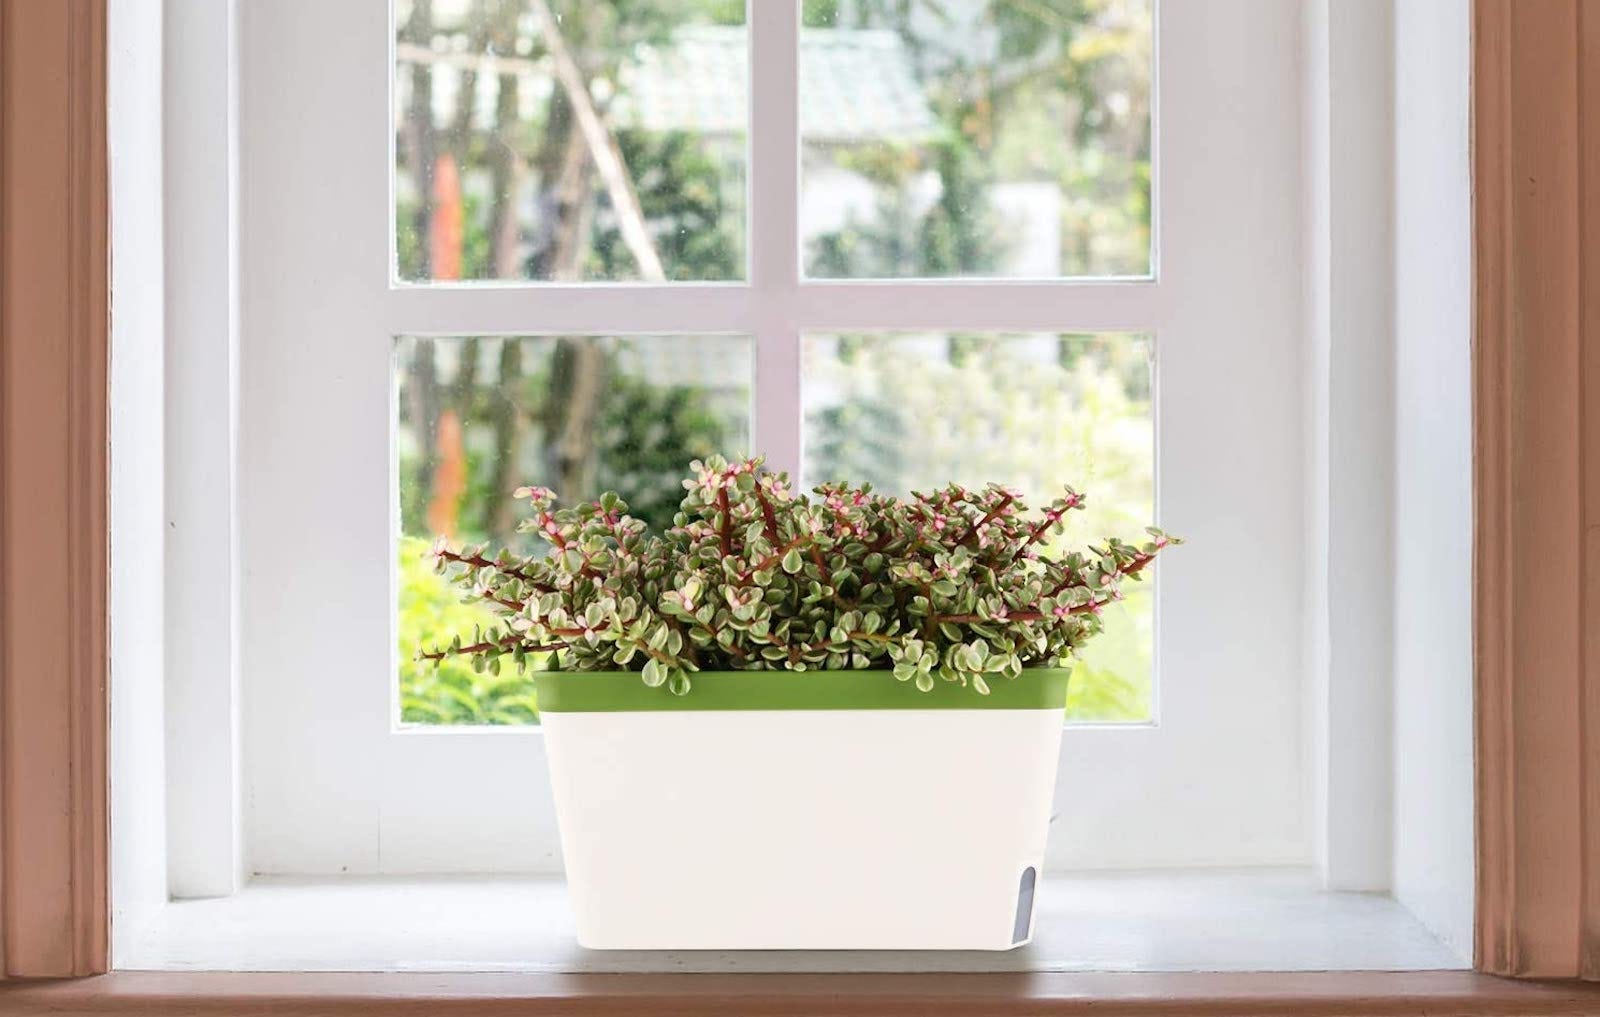 A white rectangular planter with a leafy plant in it sits in a window